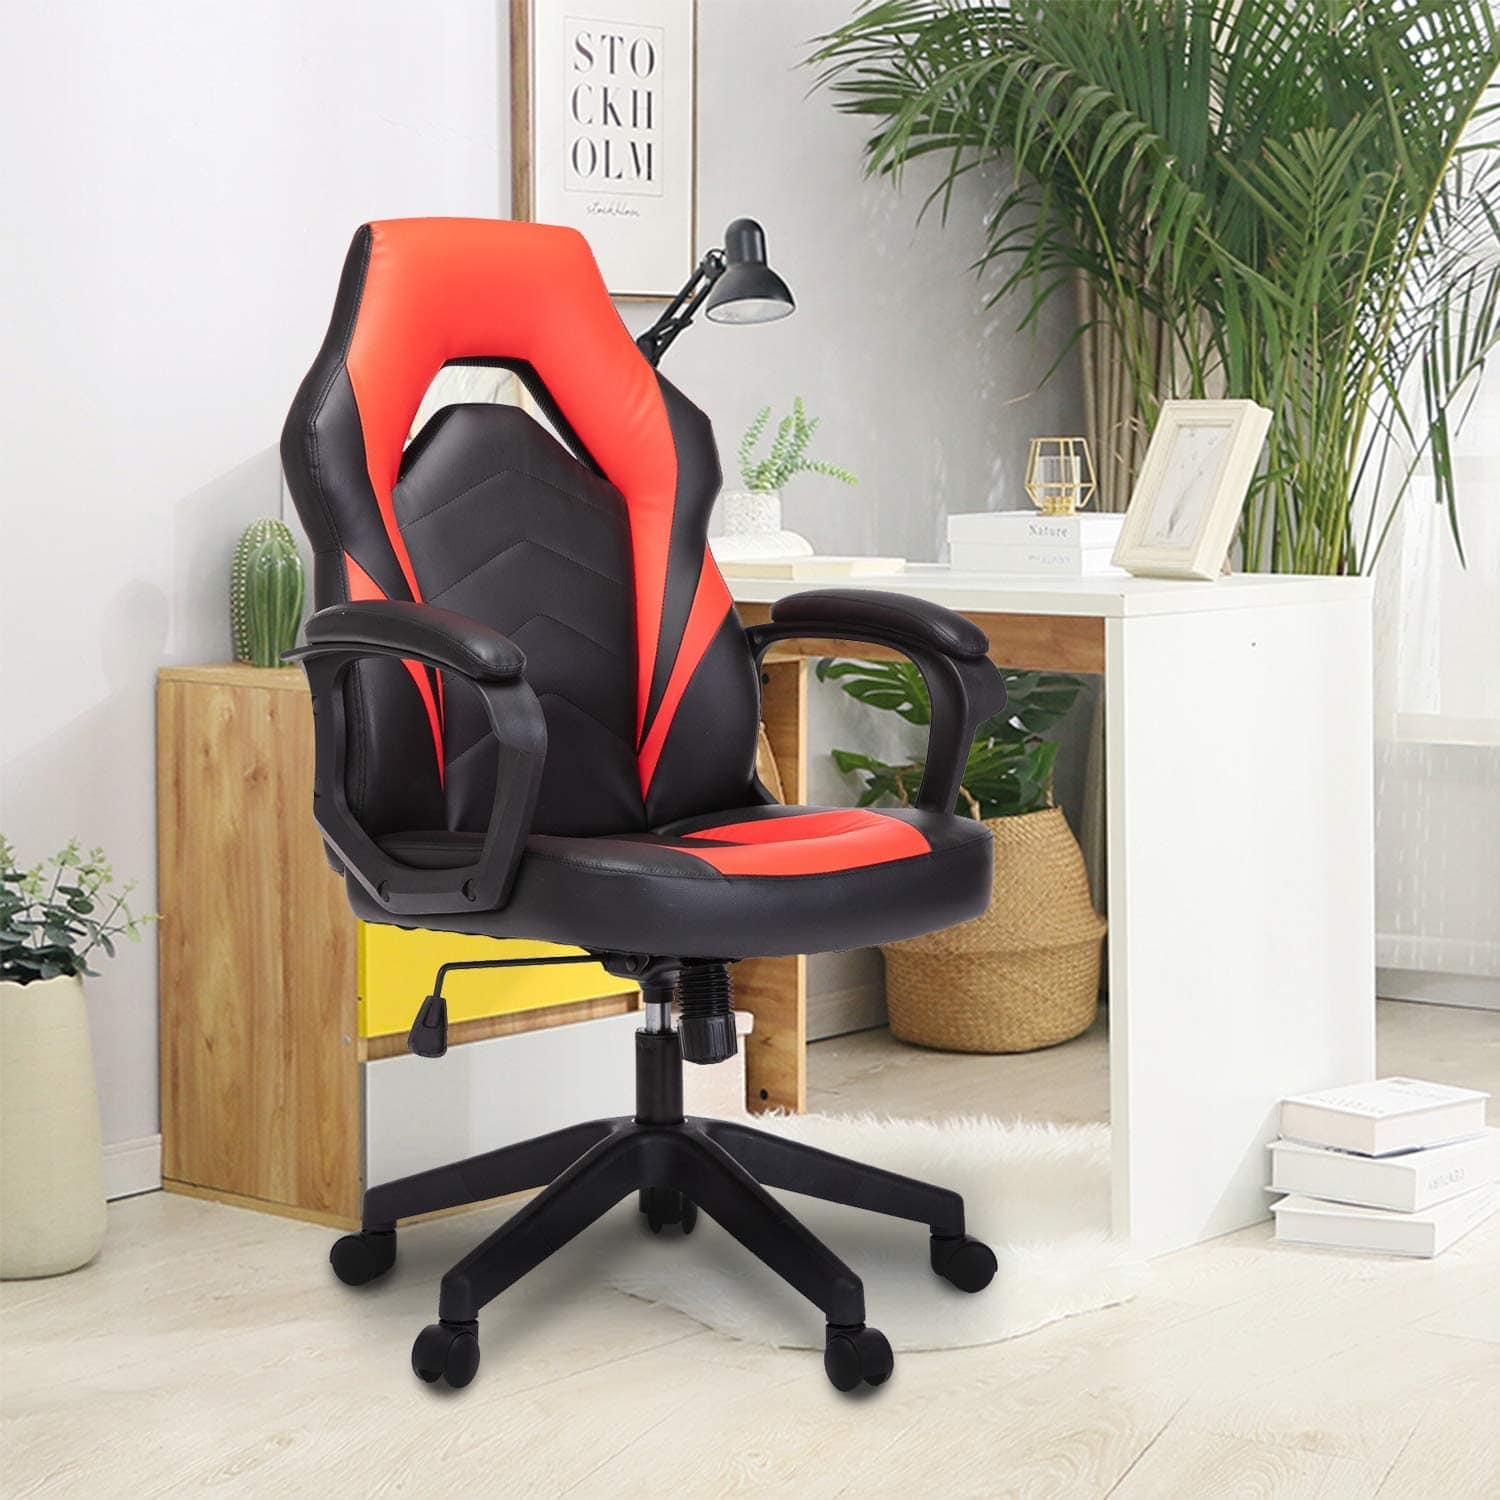 SMUGDESK Racing Gaming Chair Executive Bonded Leather Computer Office Chair with Massage and Padding Armrest Red